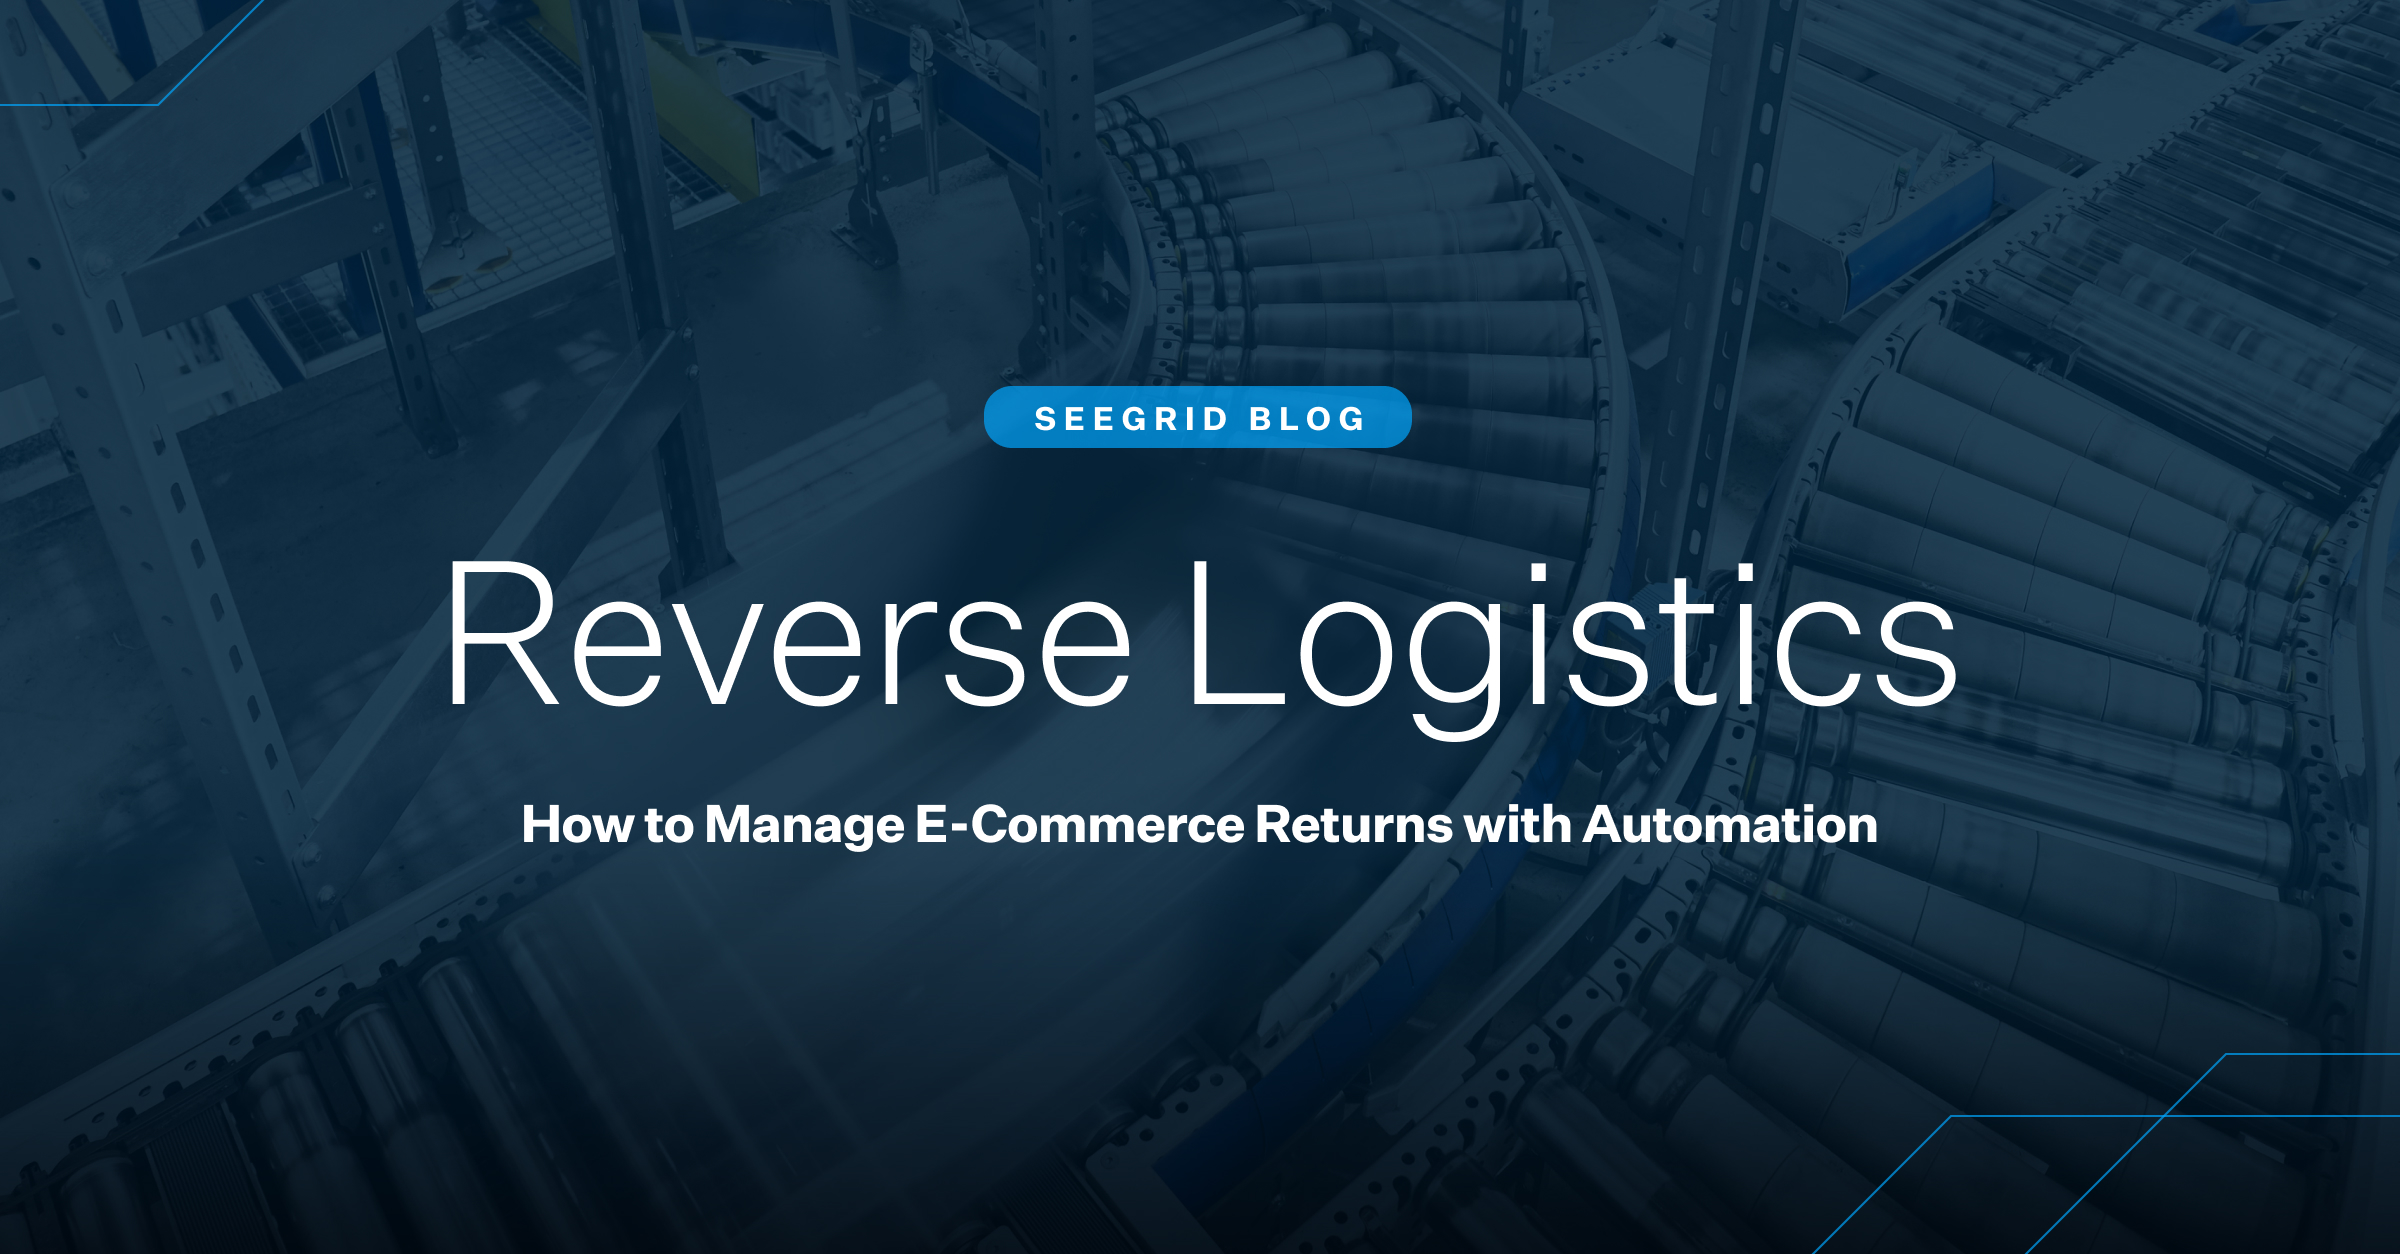 Reverse Logistics: How to manage e-commerce returns with automation and AMRs